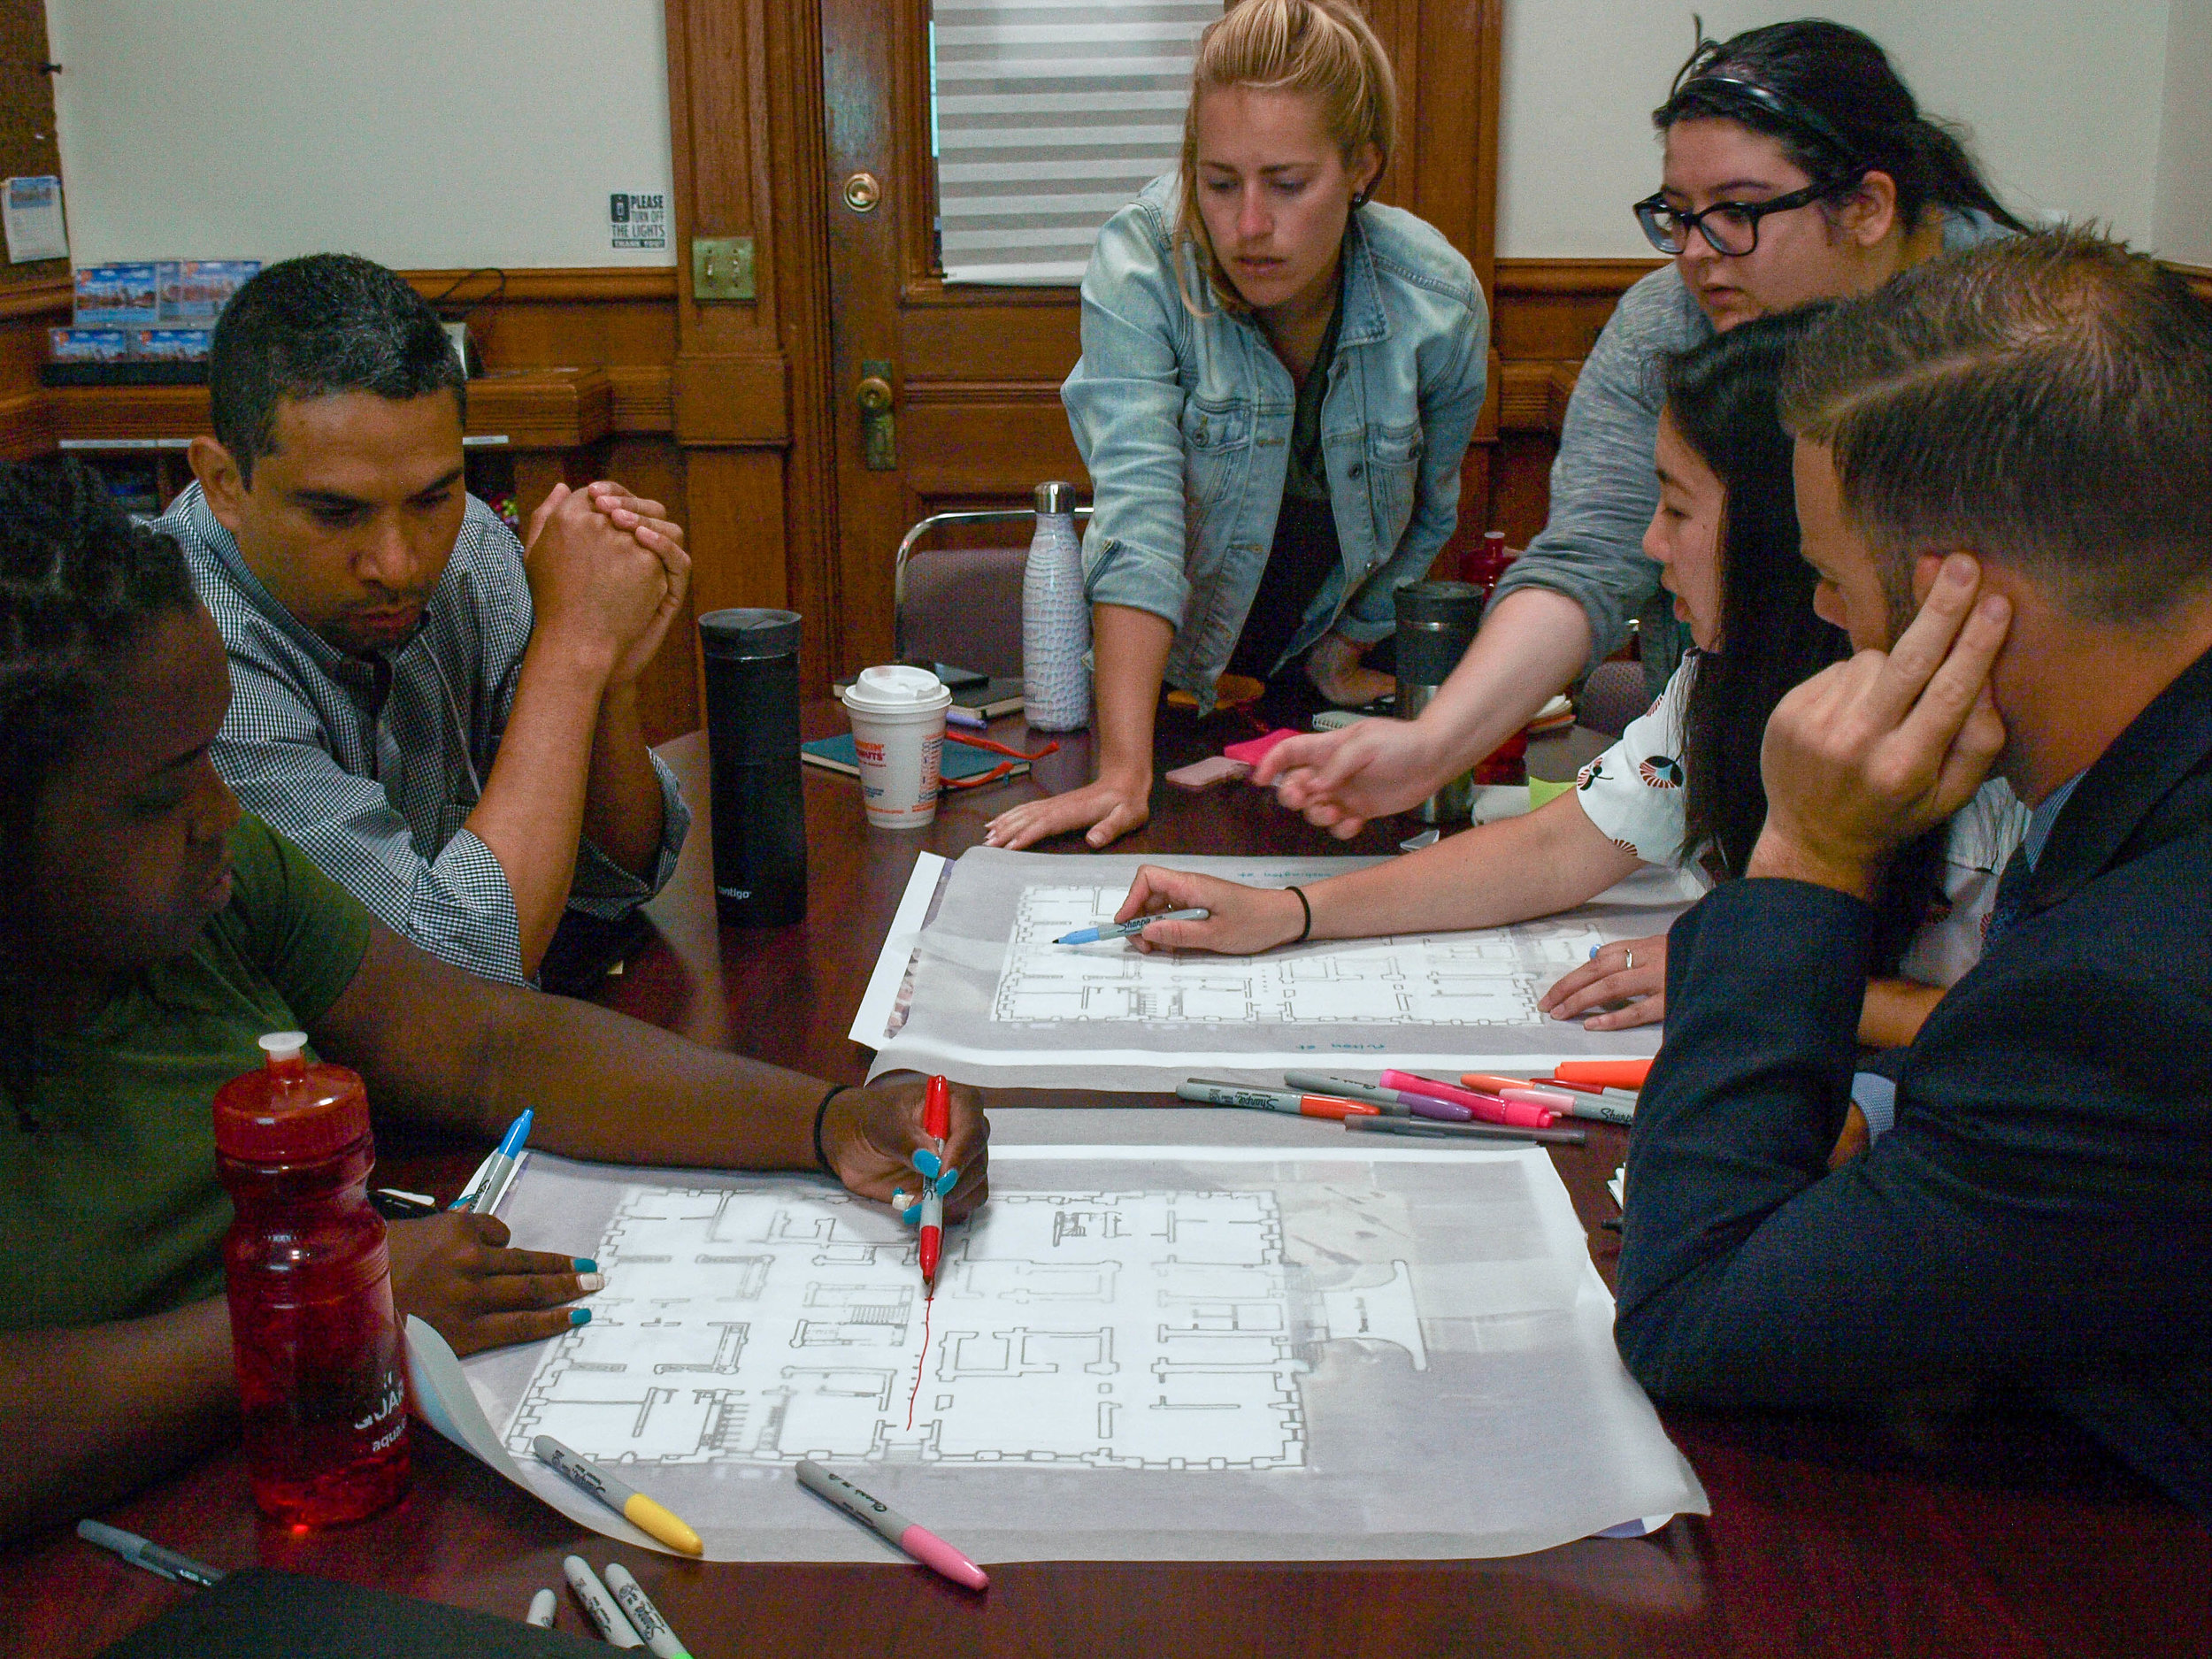 two groups working through the entry sequence of city hall during the design thinking workshop